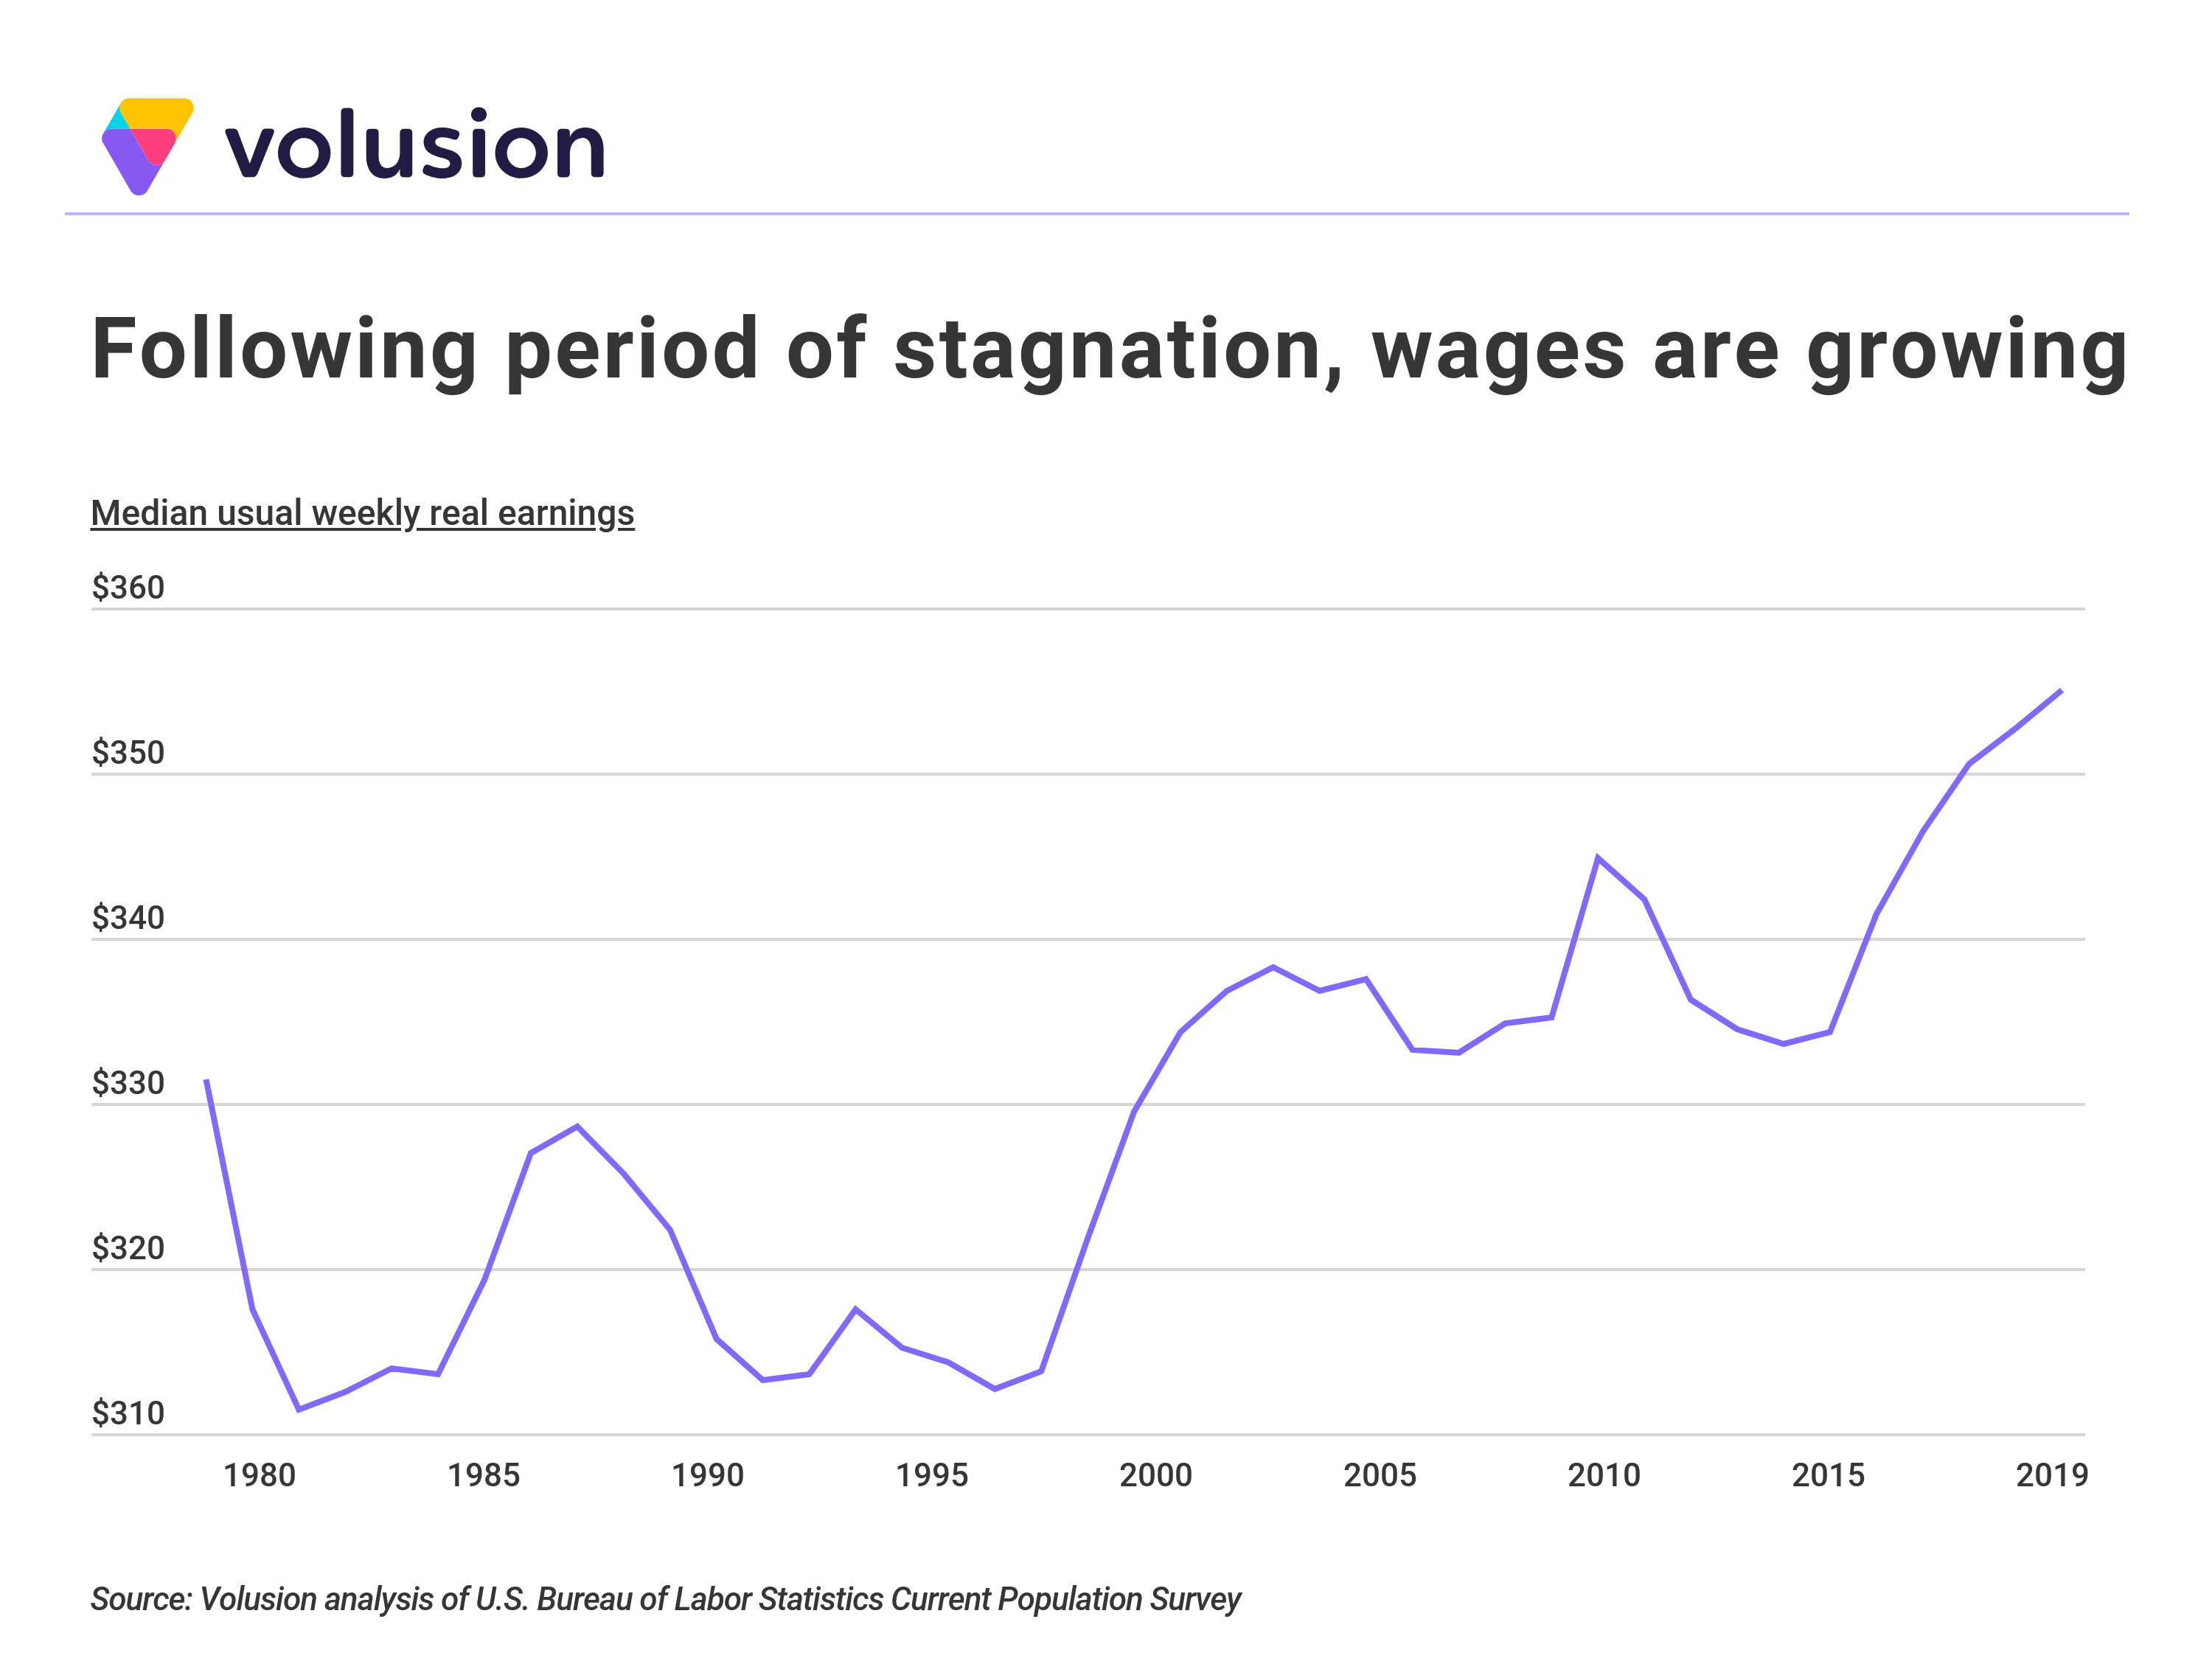 Line graph showing increase in median weekly real earnings from 1980-2019